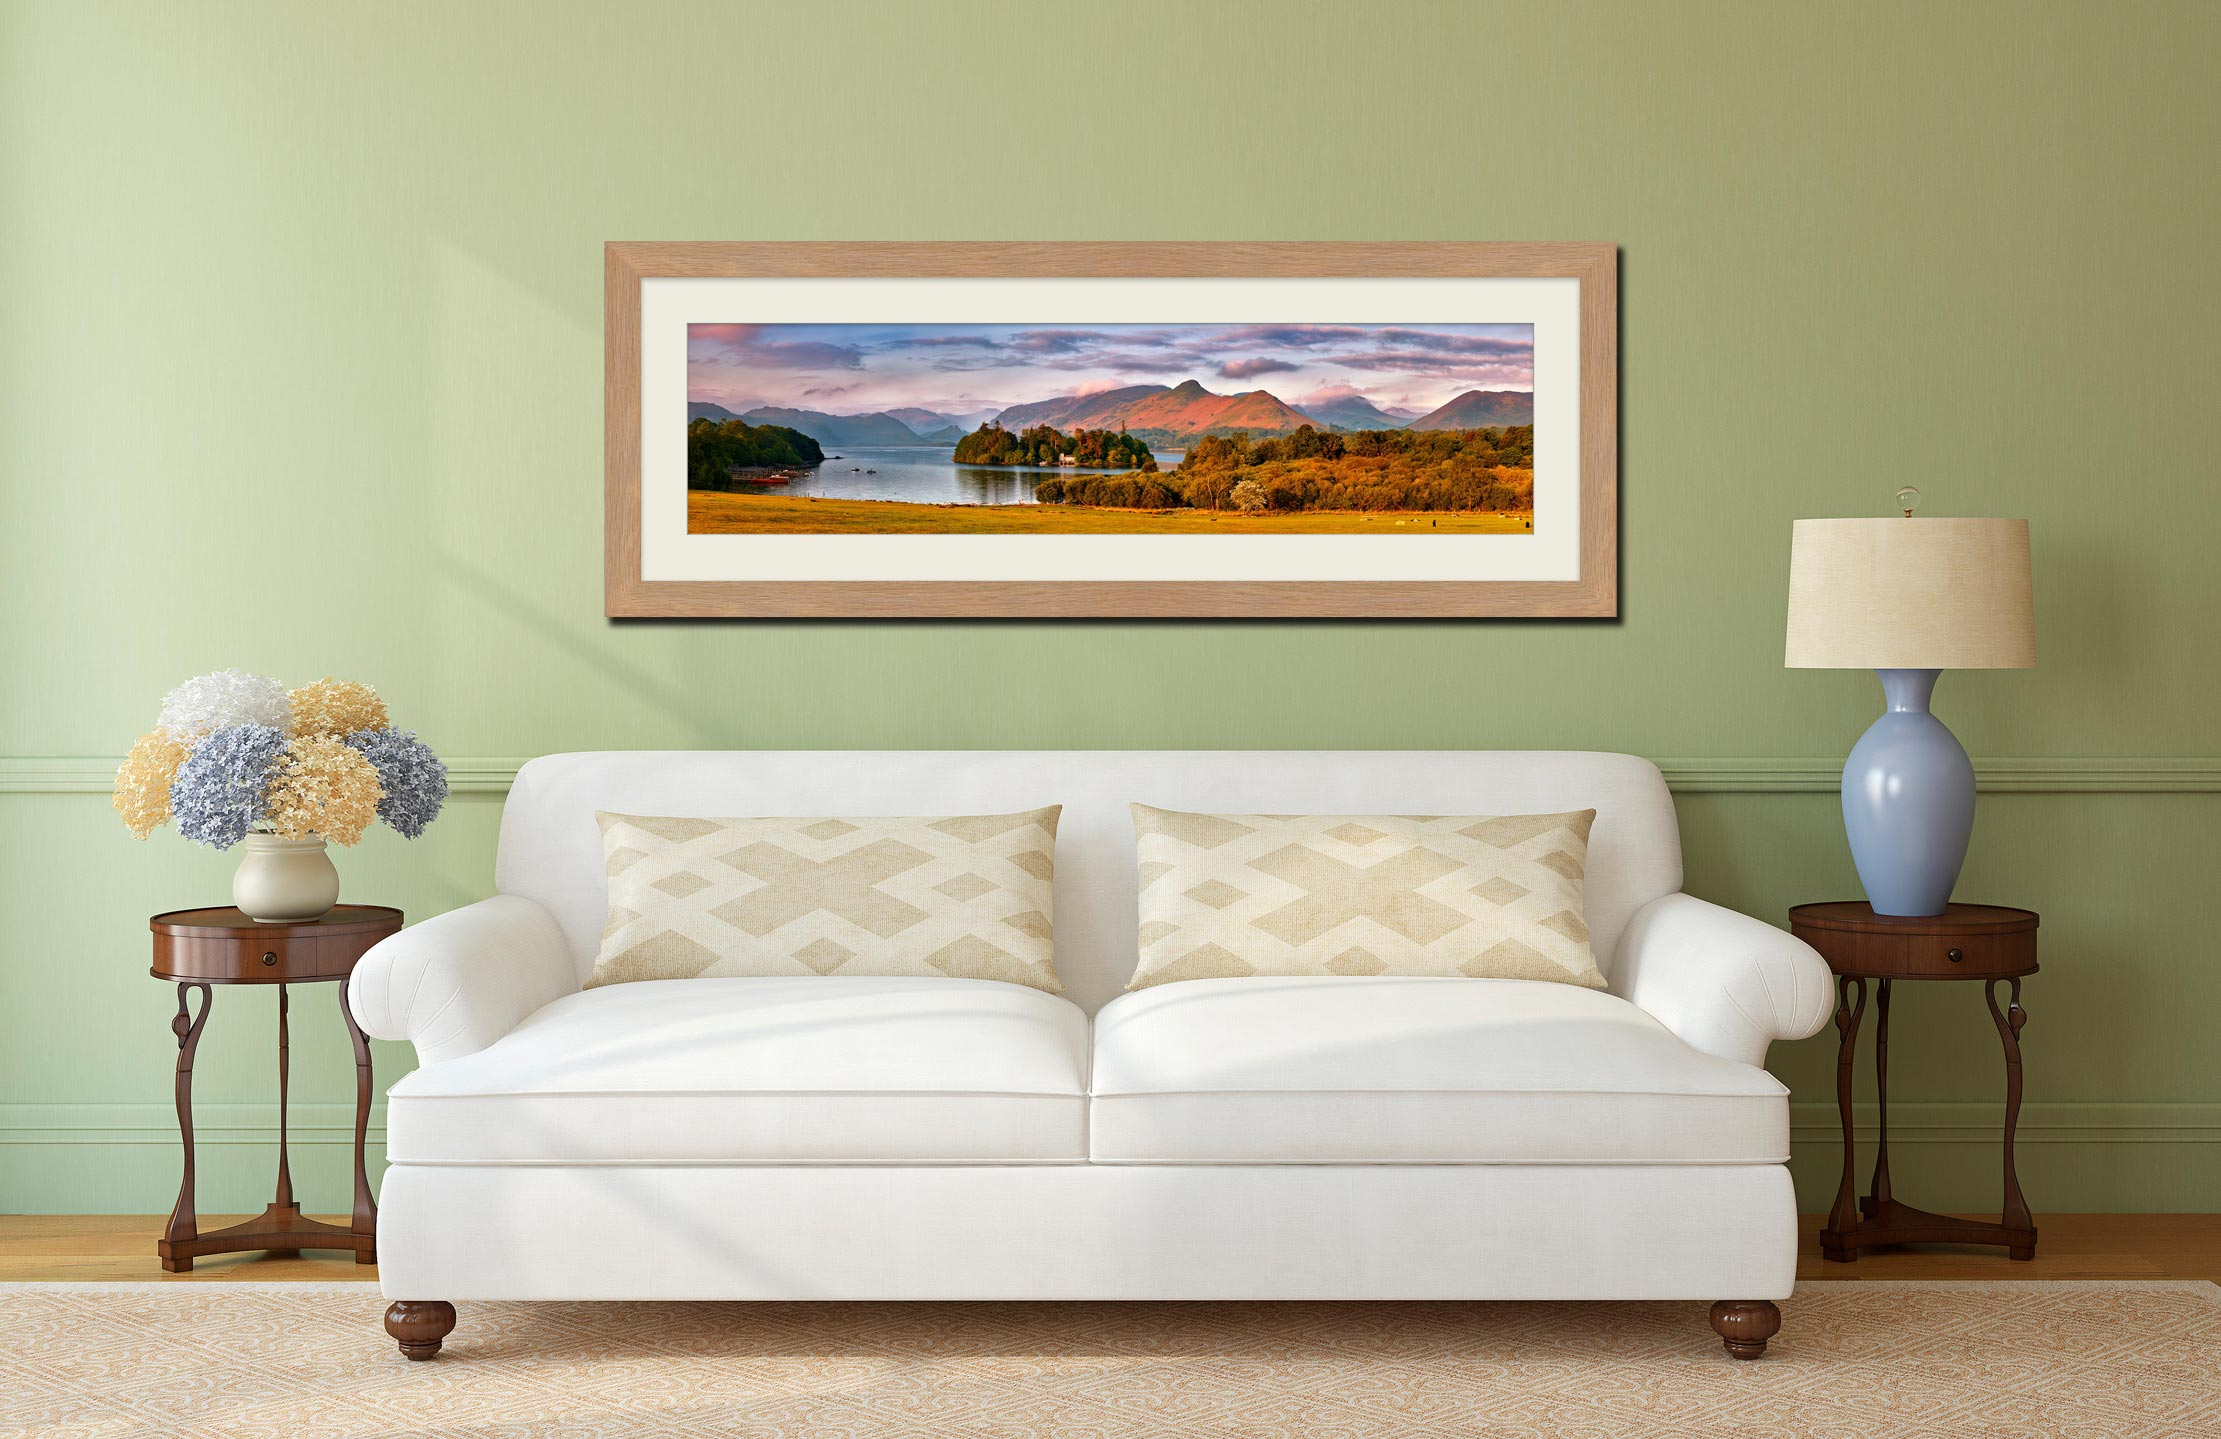 Derwent Water and Cat Bells in Morning Light - Framed Print with Mount on Wall